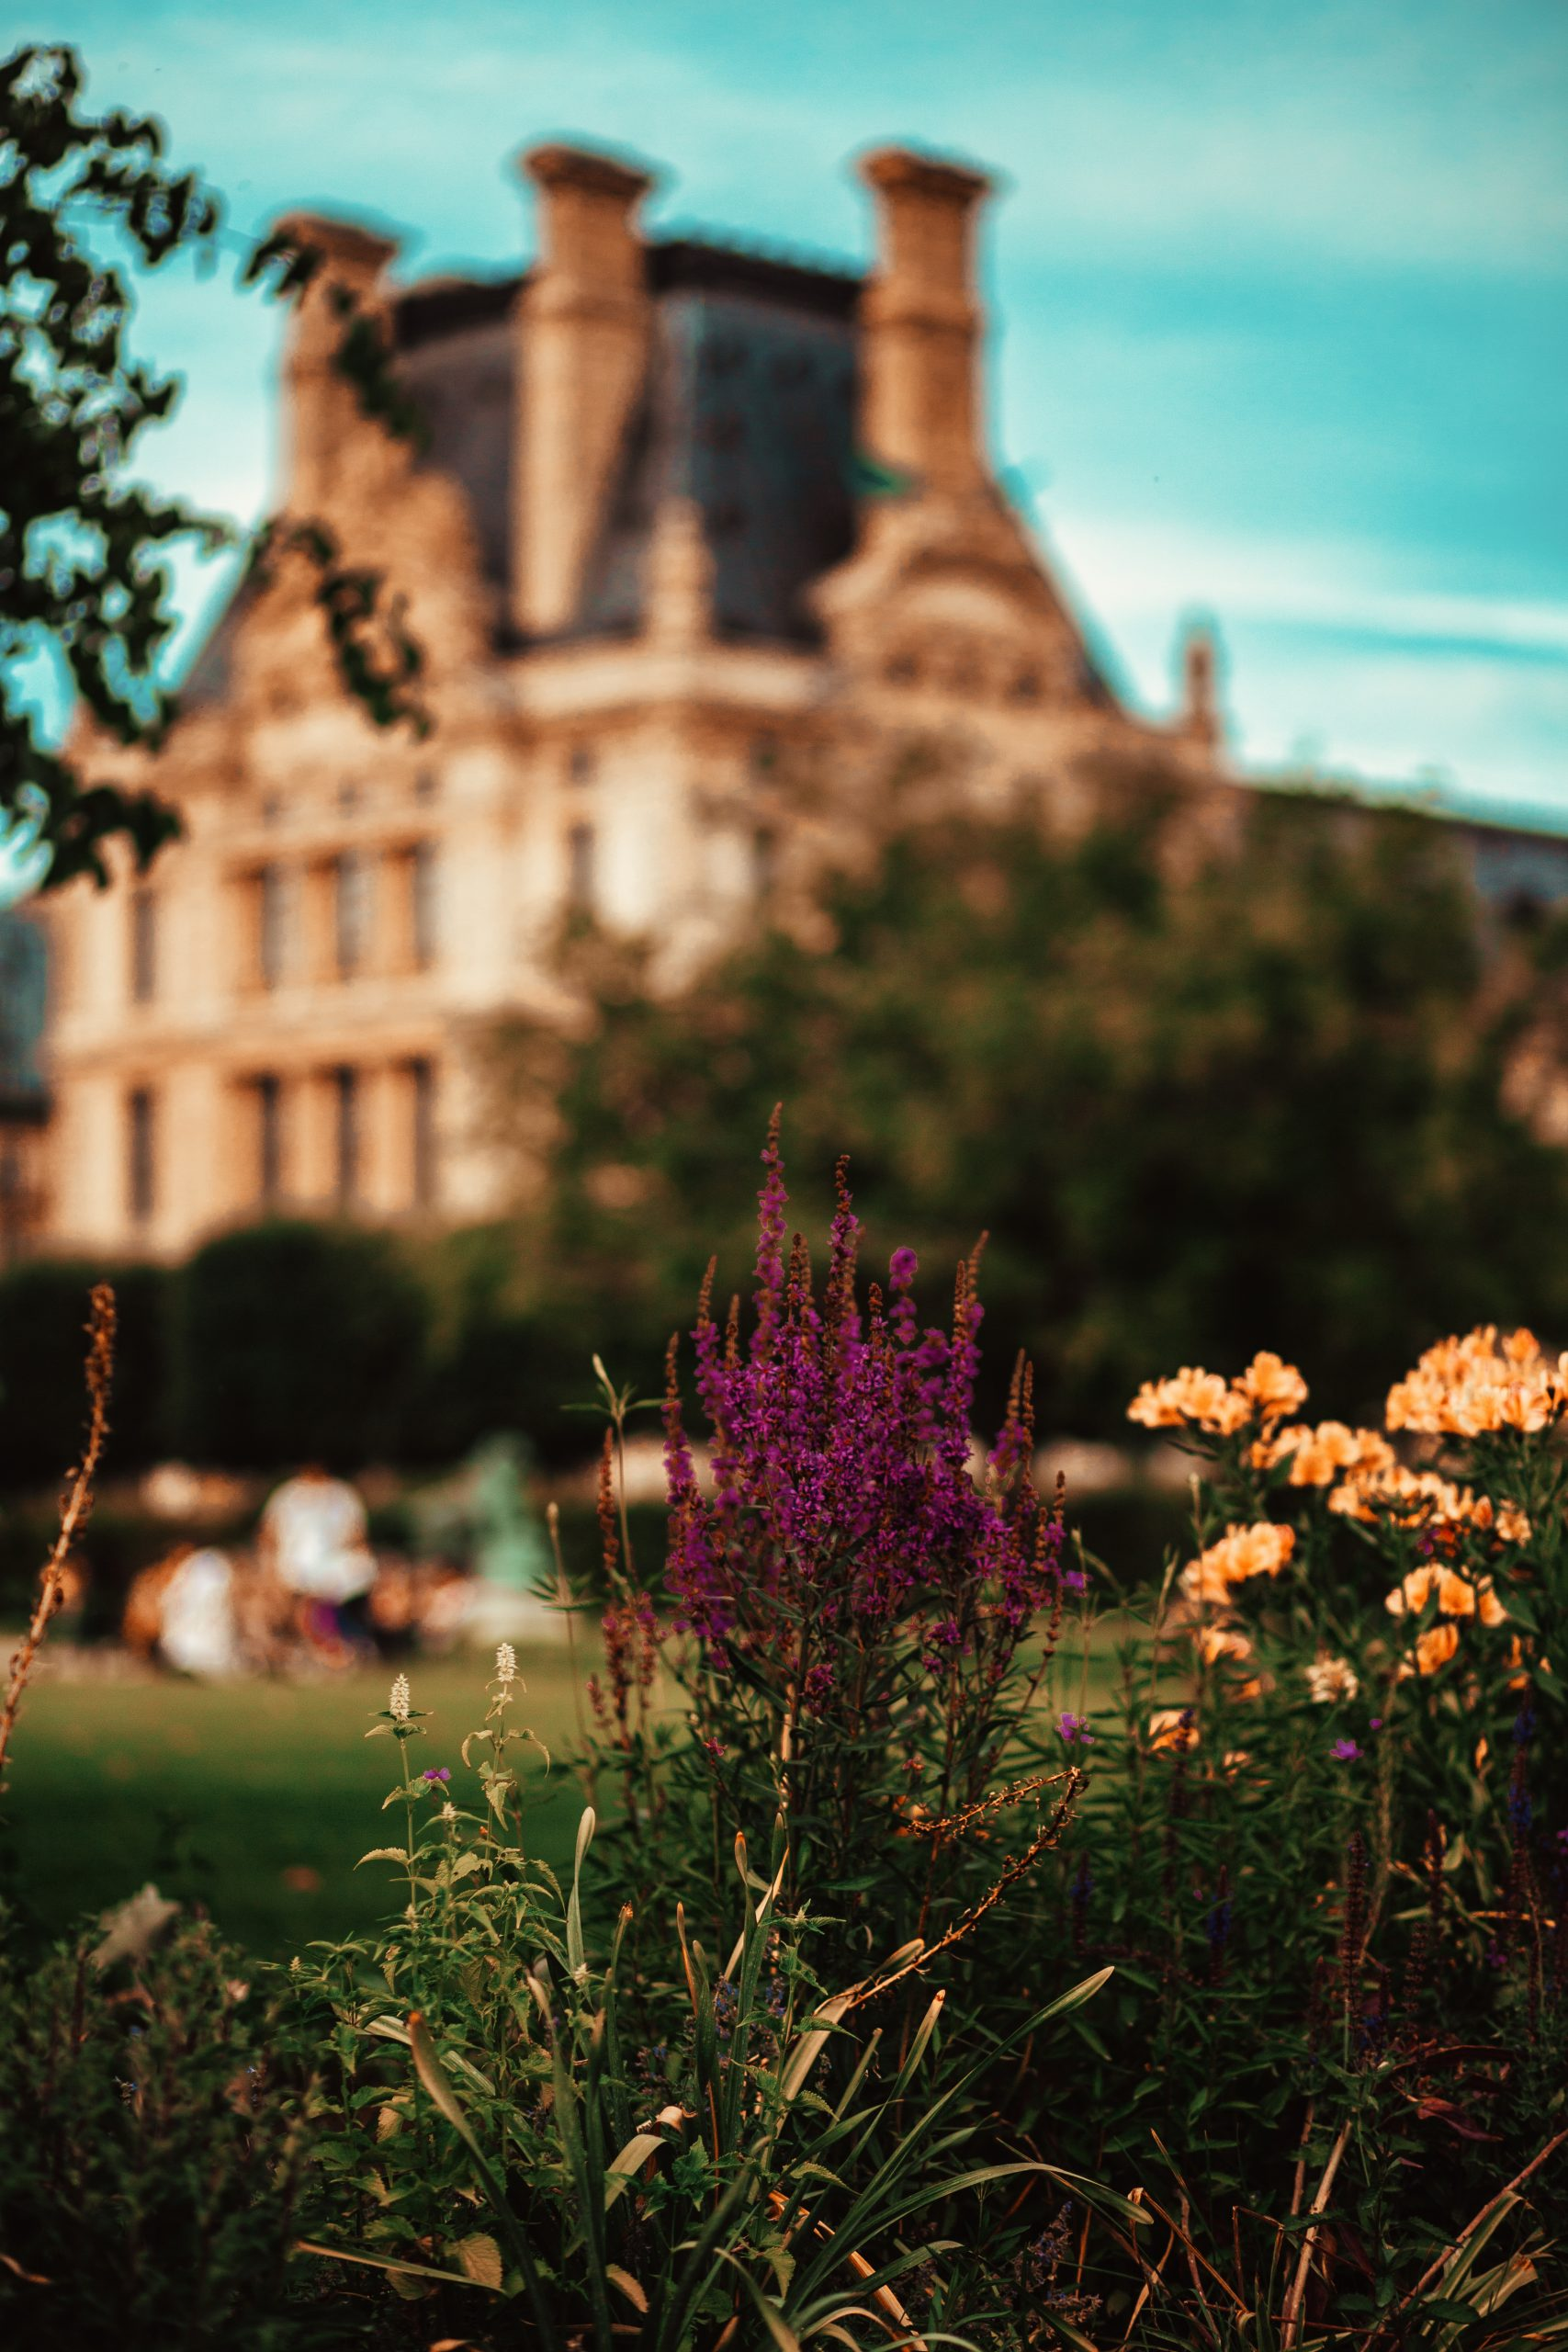 Flowers in park with castle in the background